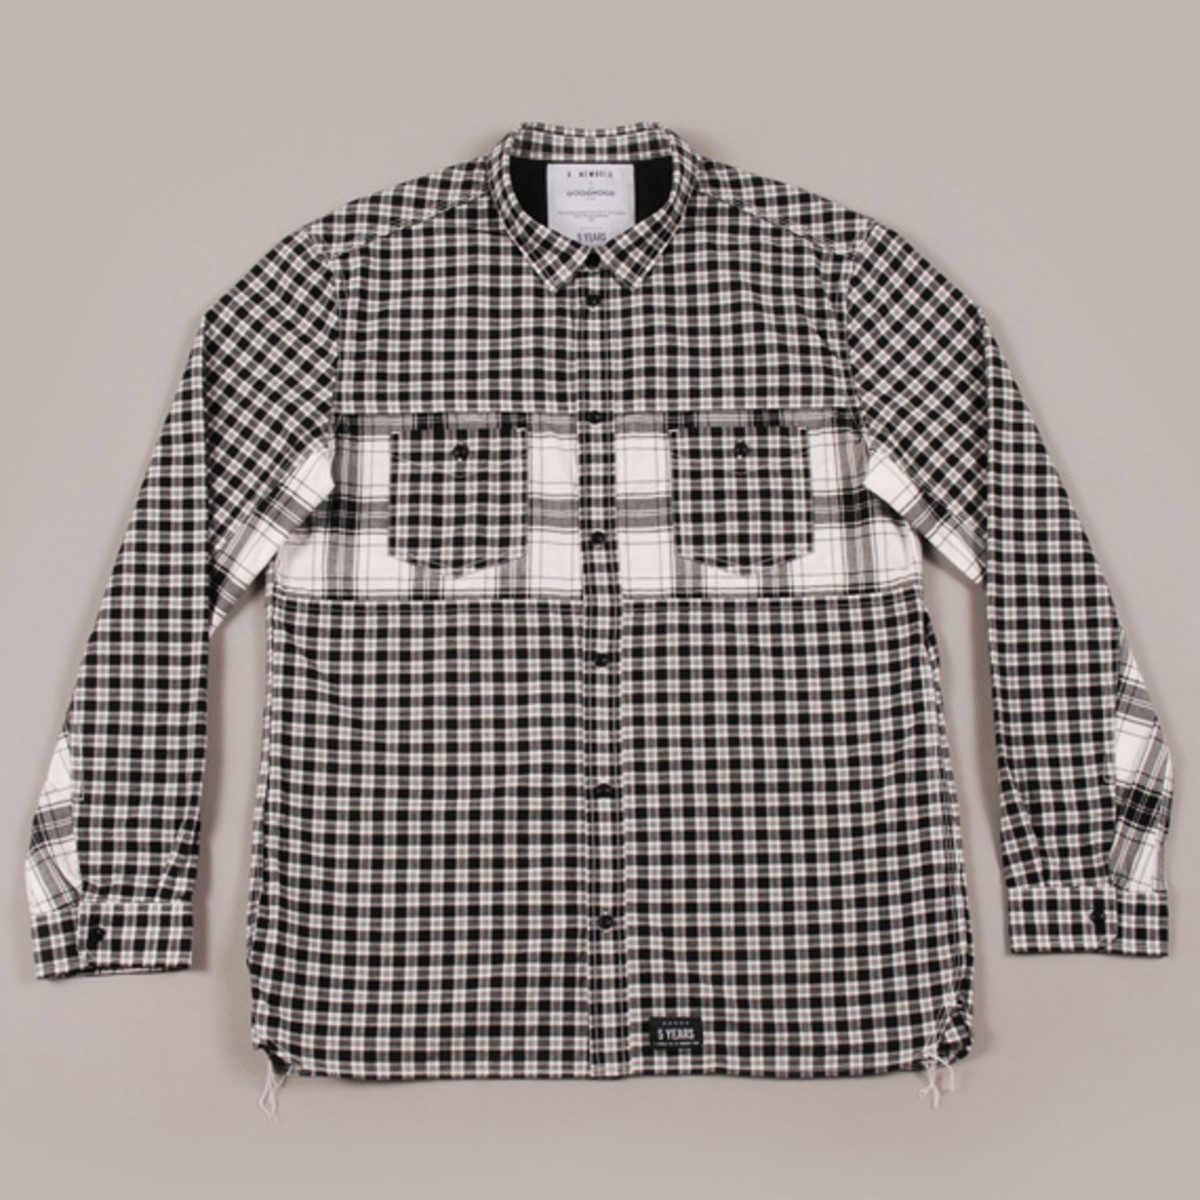 r.newbold-goodhood-5th-anniversary-collection-03